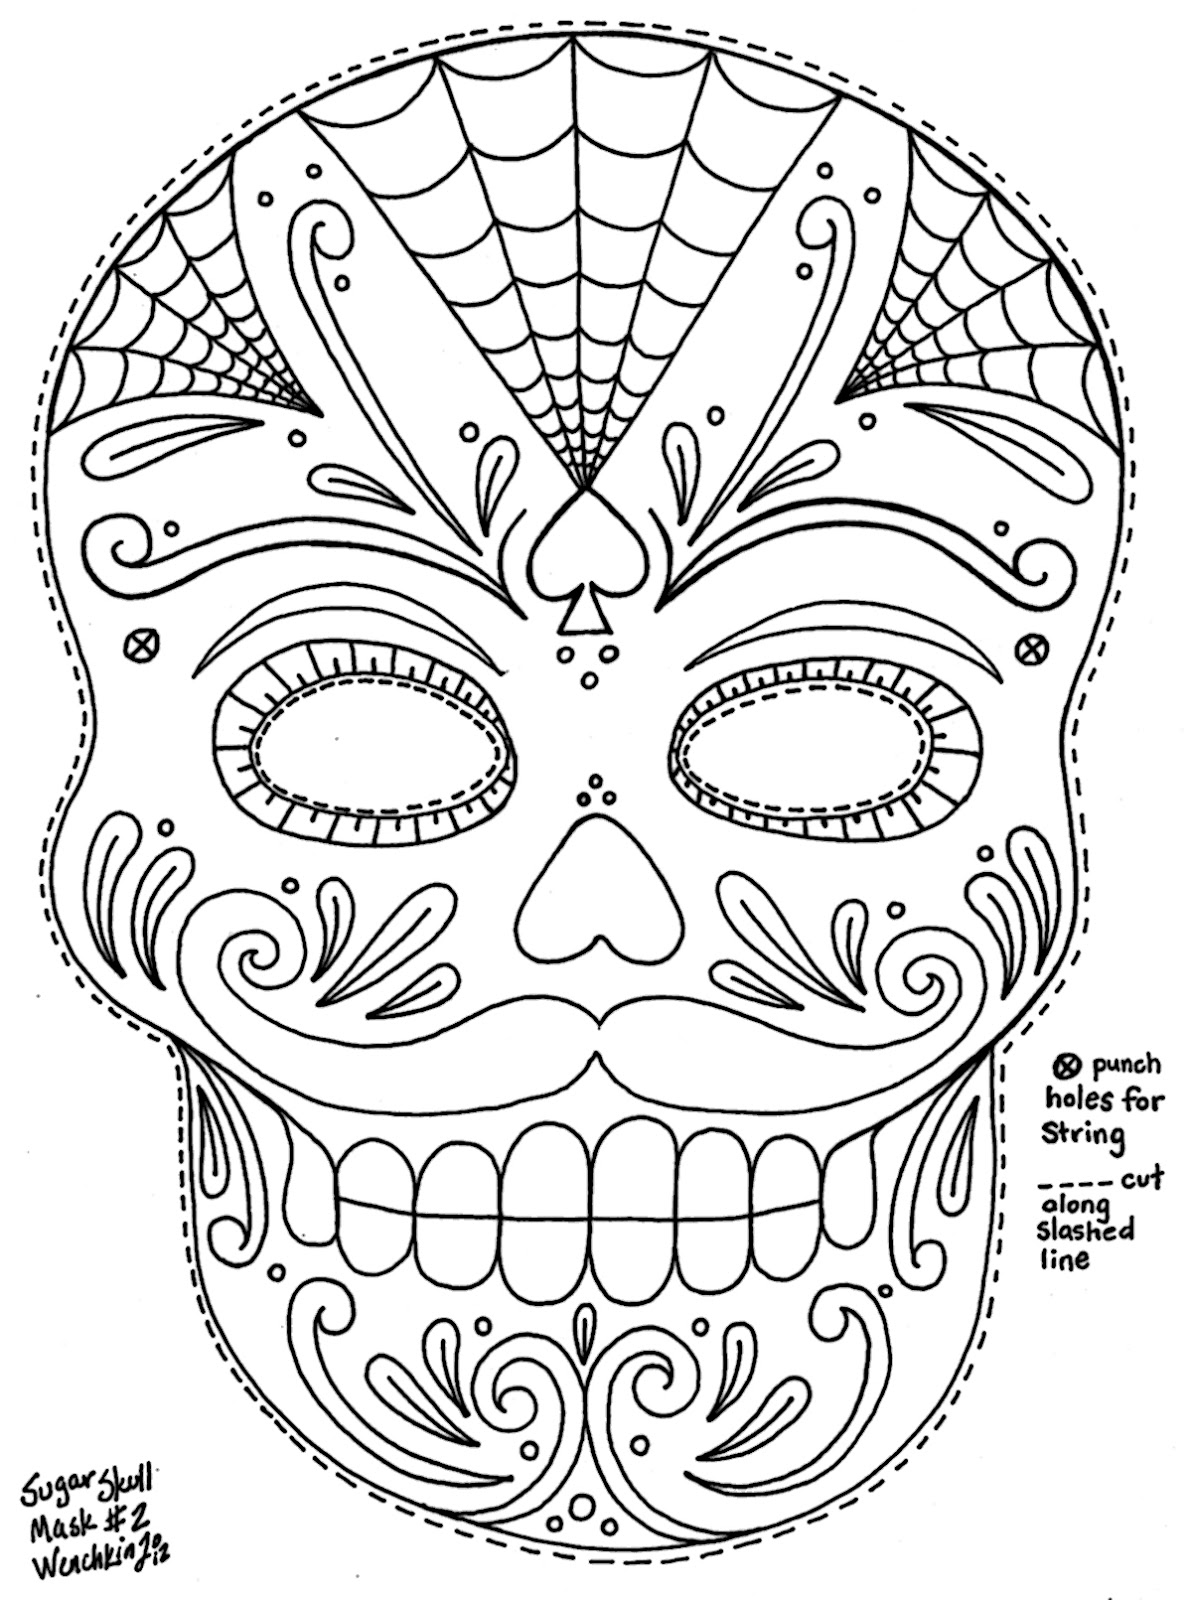 sugar candy skulls coloring pages - photo#45